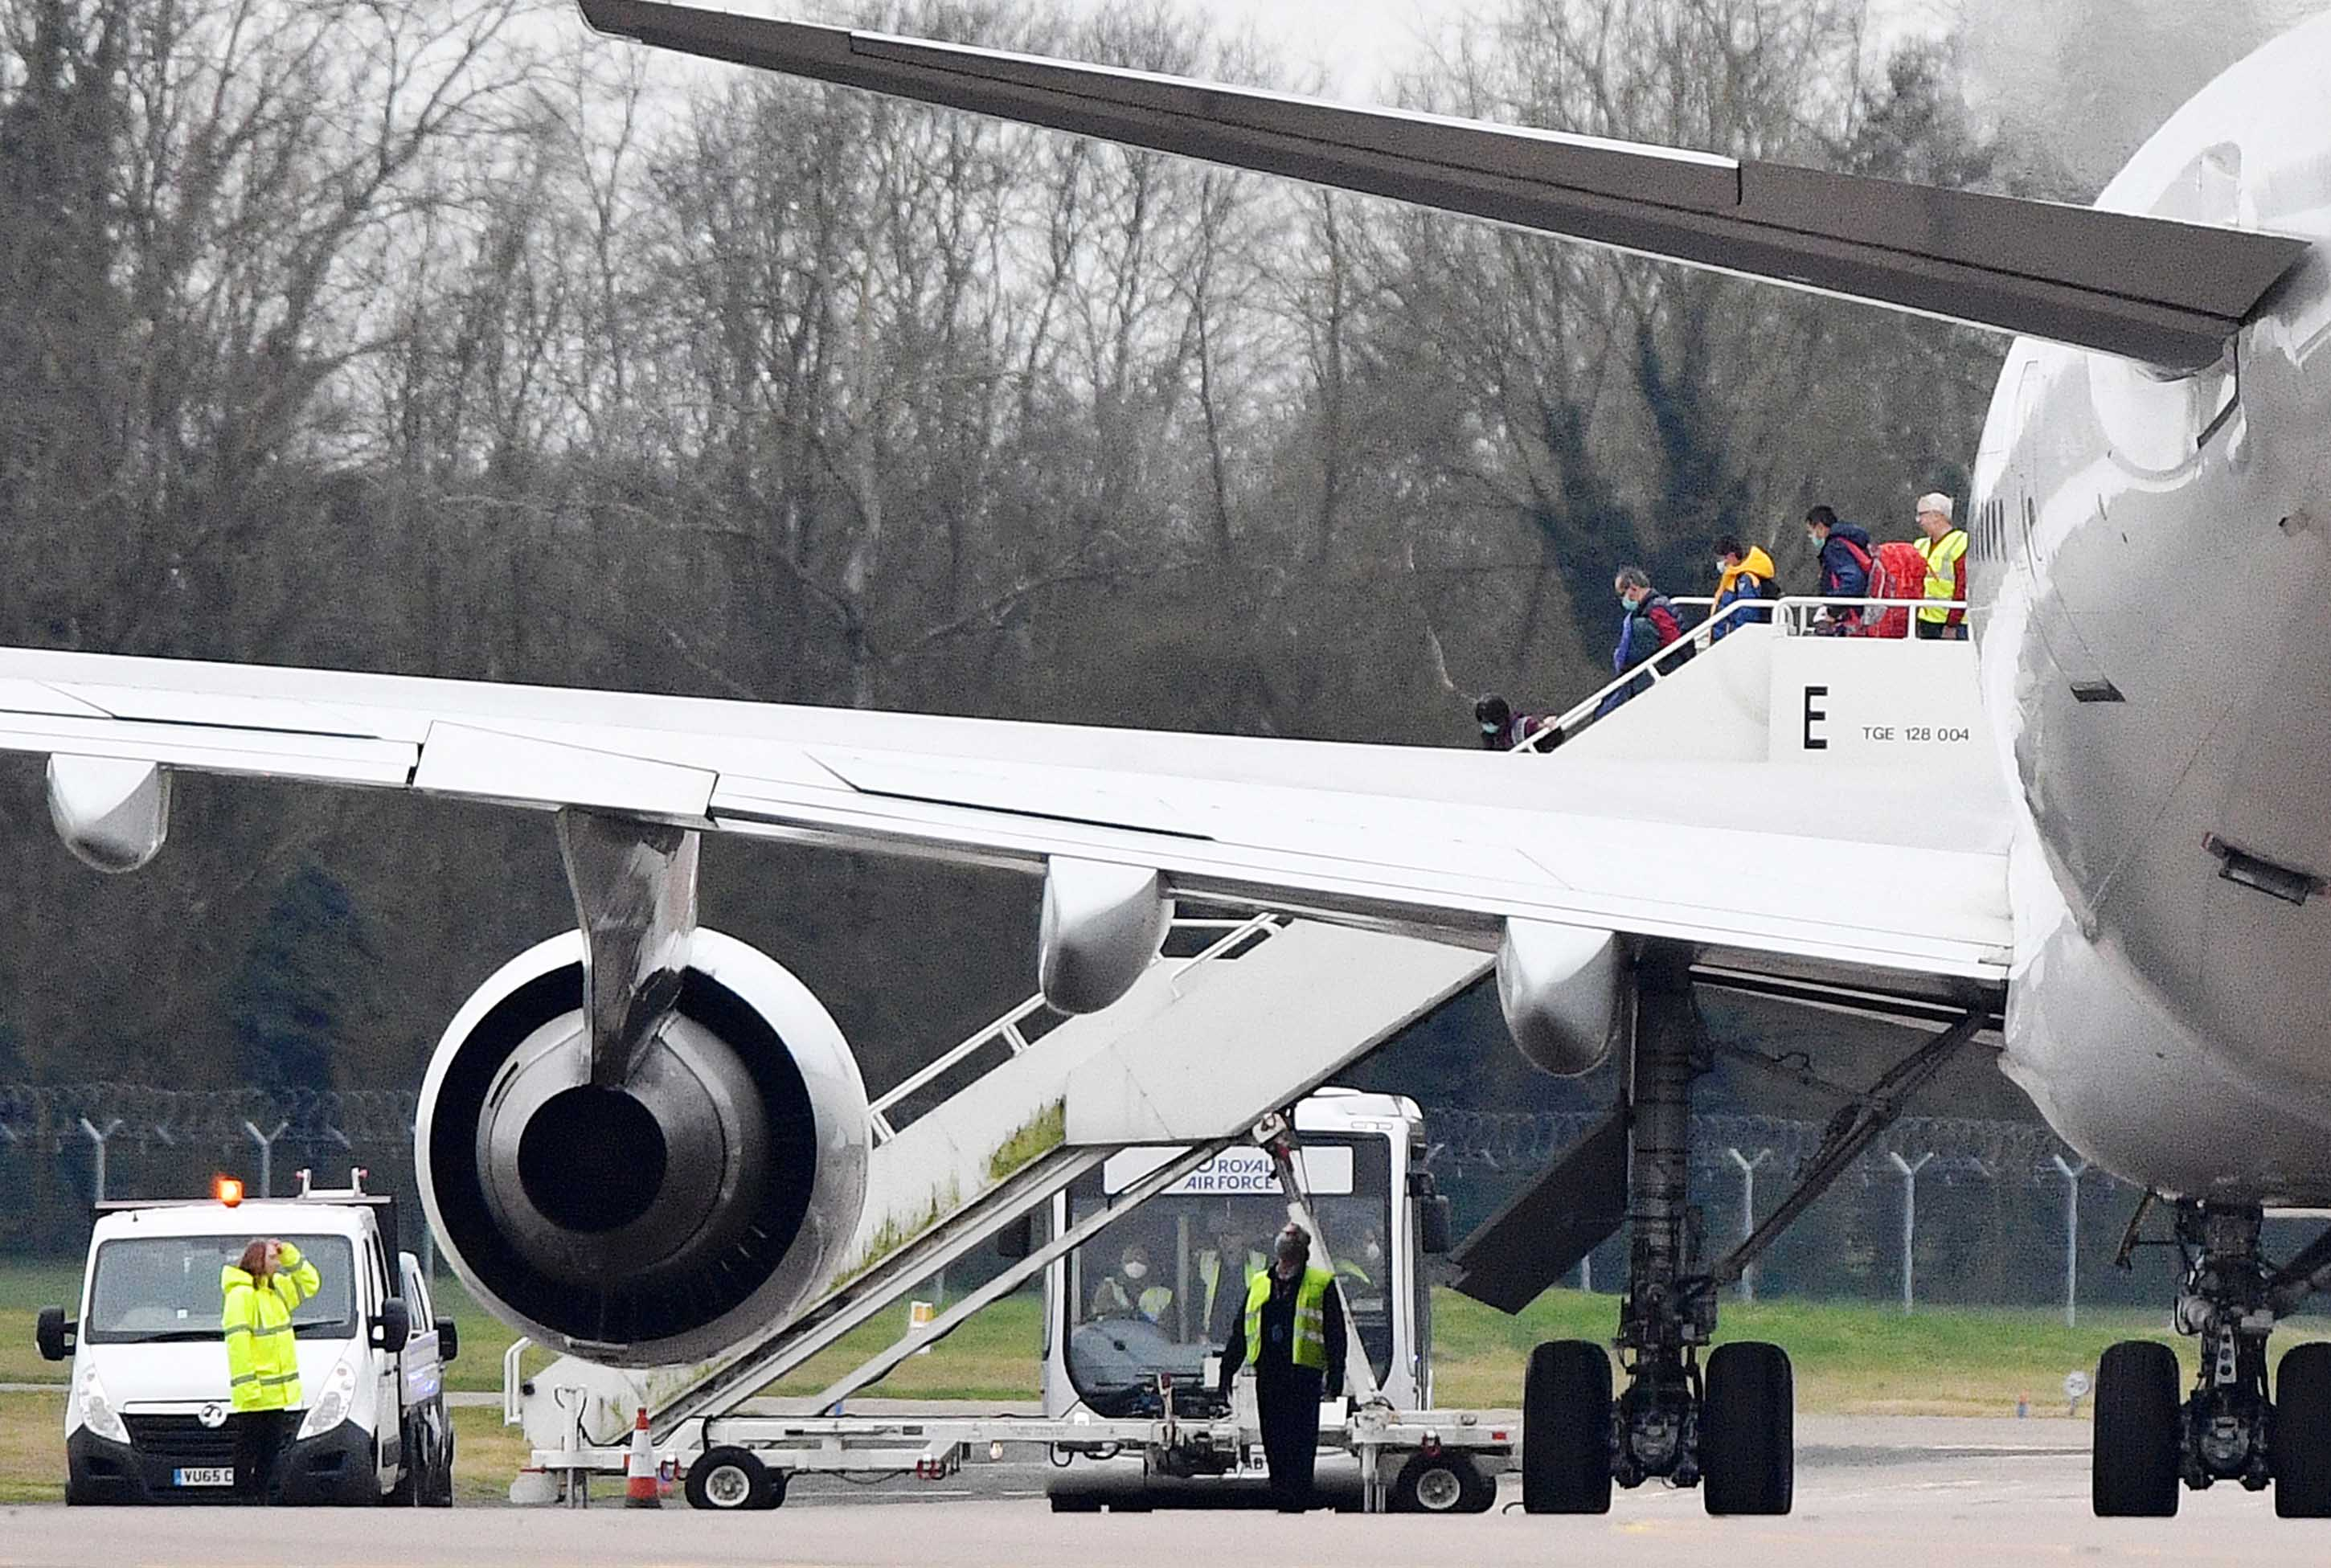 Some of the 83 Britons and 27 foreign nationals who were evacuated from Wuhan disembark a plane at RAF Brize Norton in England on Friday.